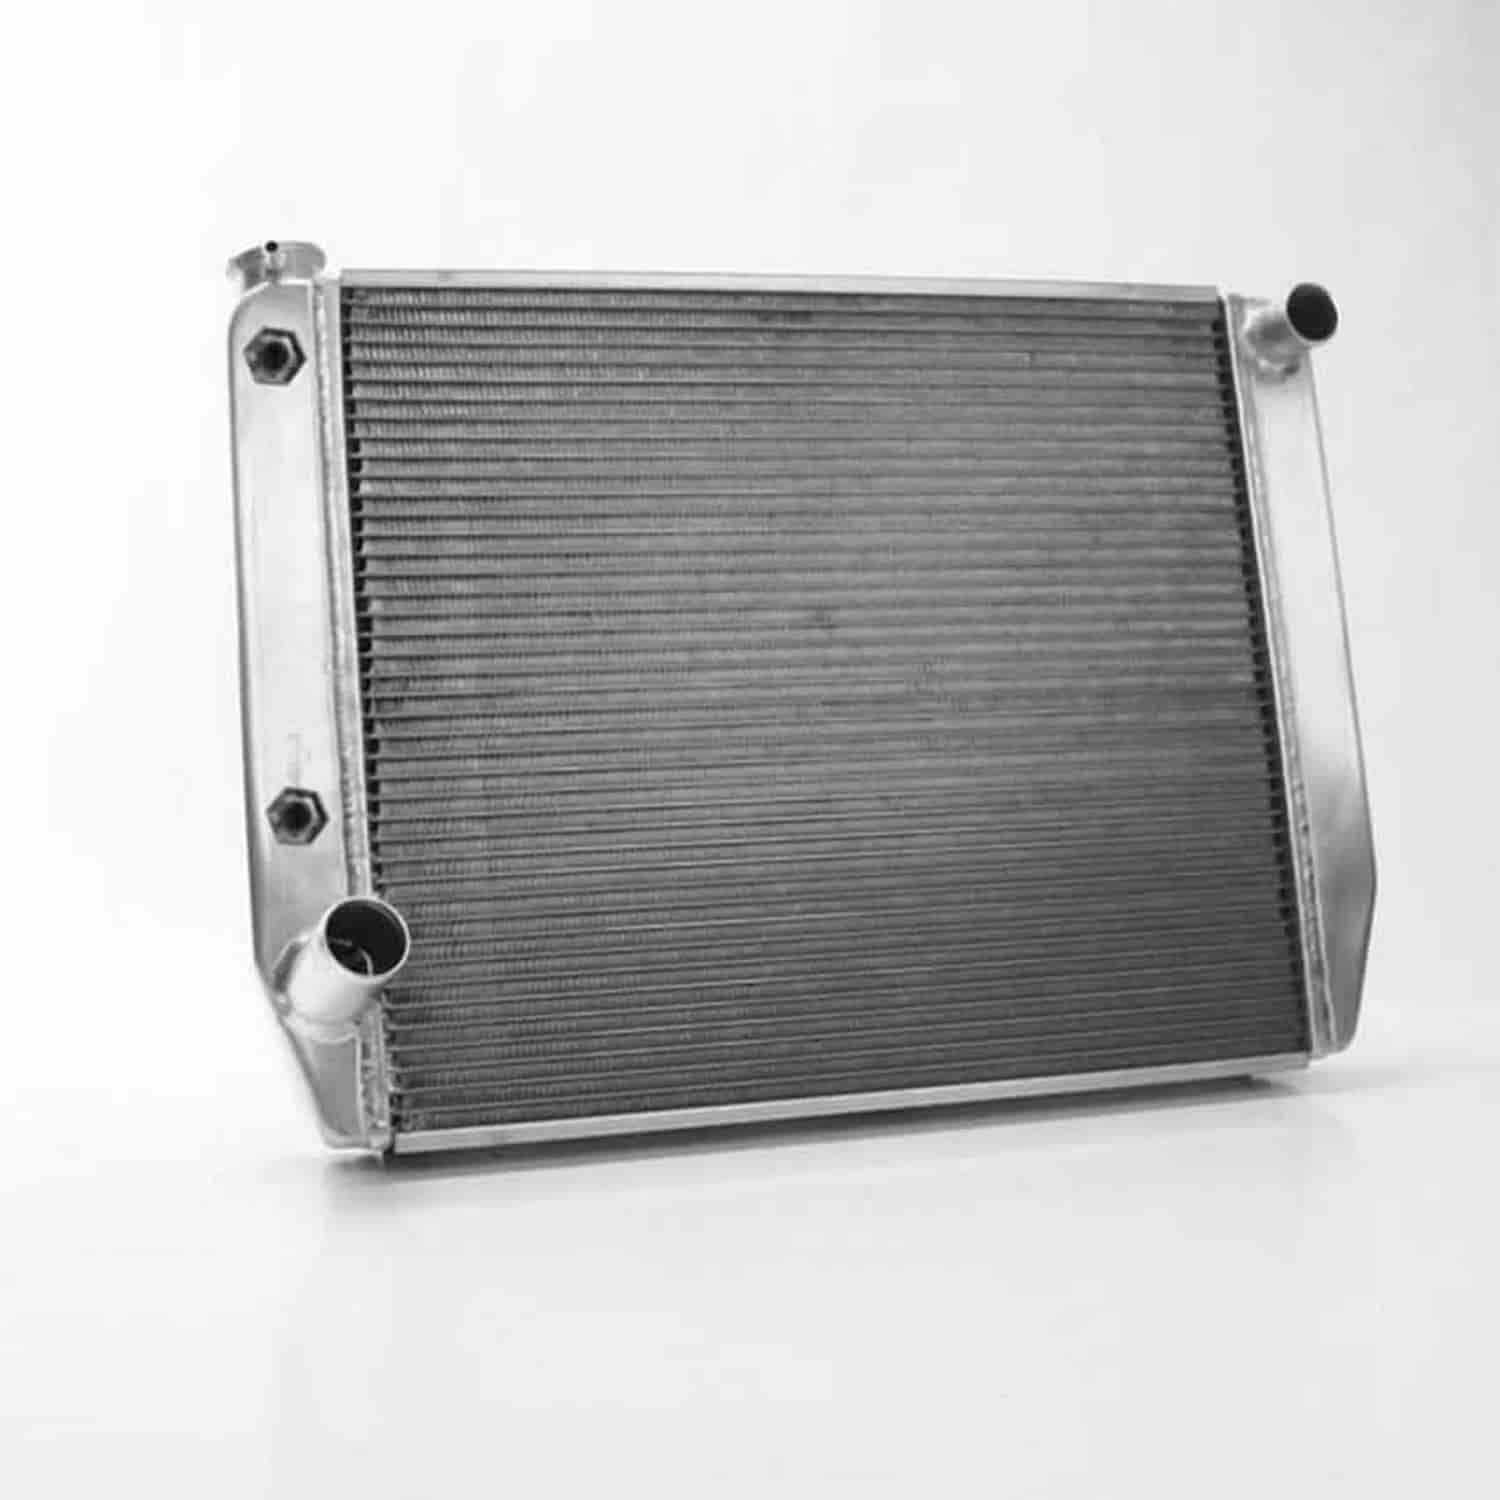 Griffin Radiators 1-56222-T